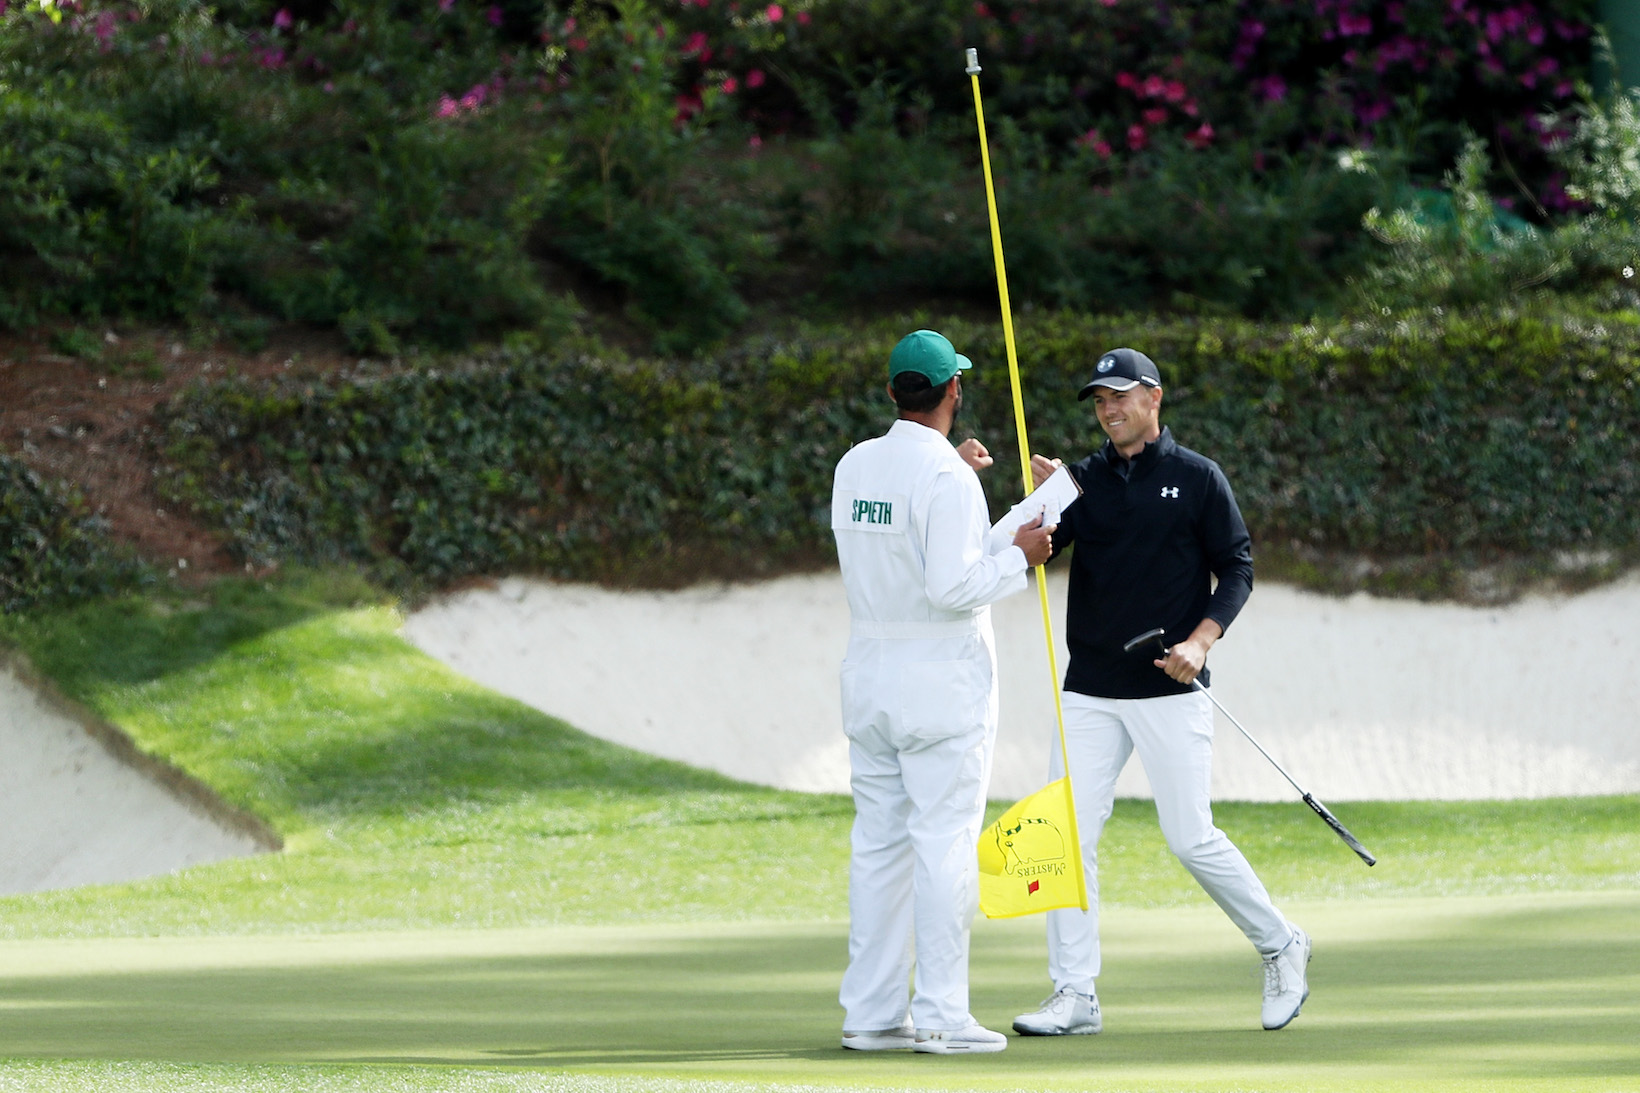 2018 Masters Tournament: Final Round - Birdie on No. 12